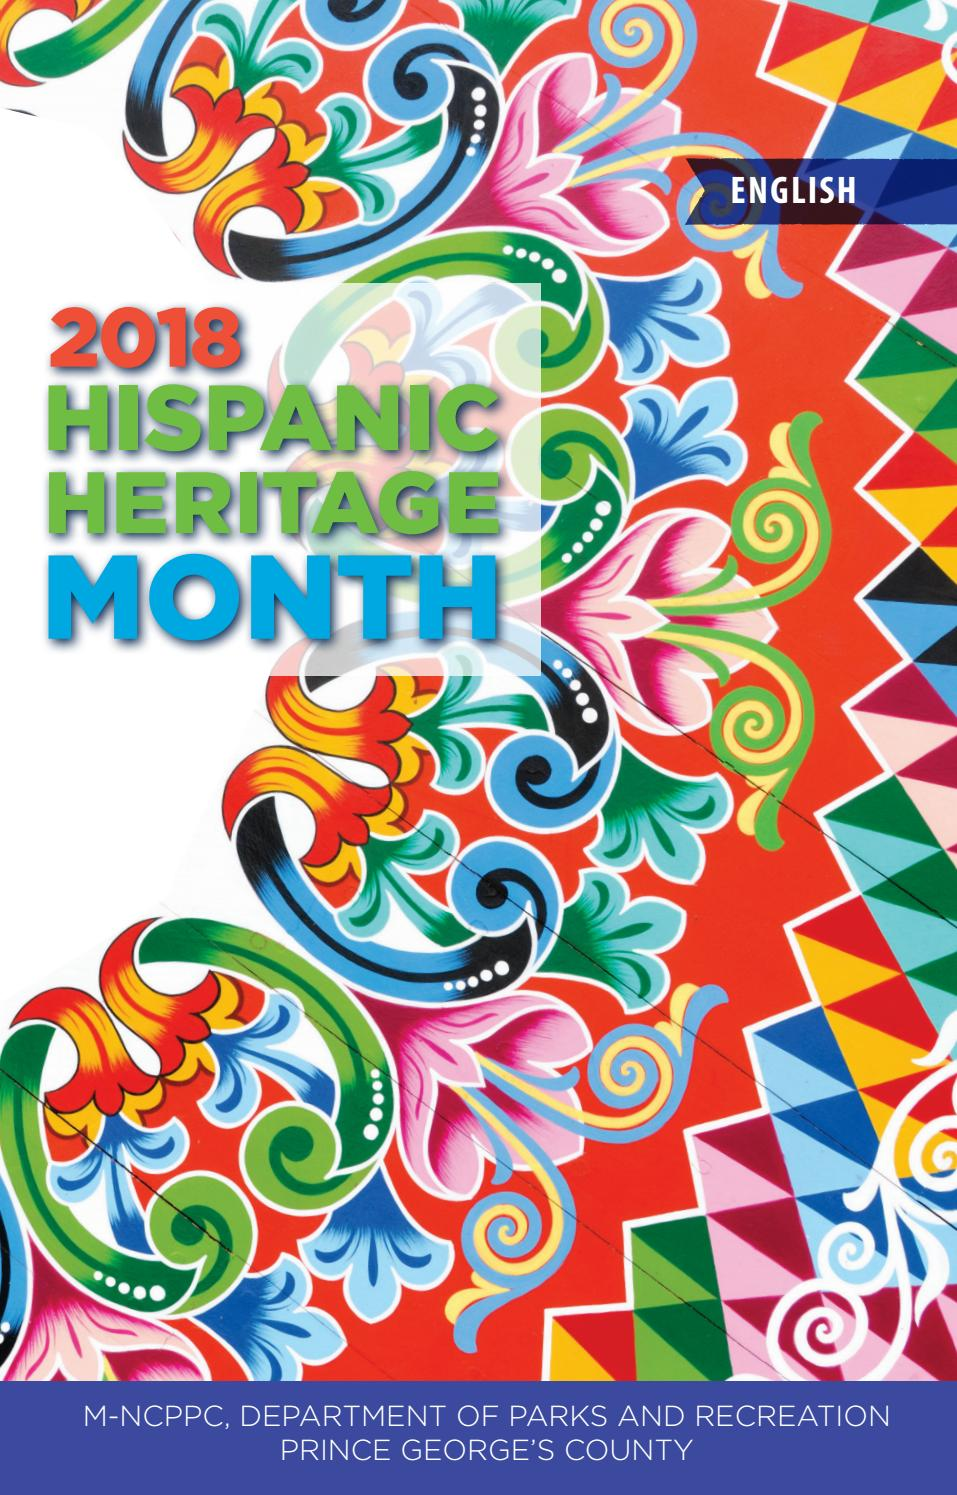 Arte De Vivir Meaning In English 2018 Hispanic Heritage Month Brochure By M Ncppc Department Of